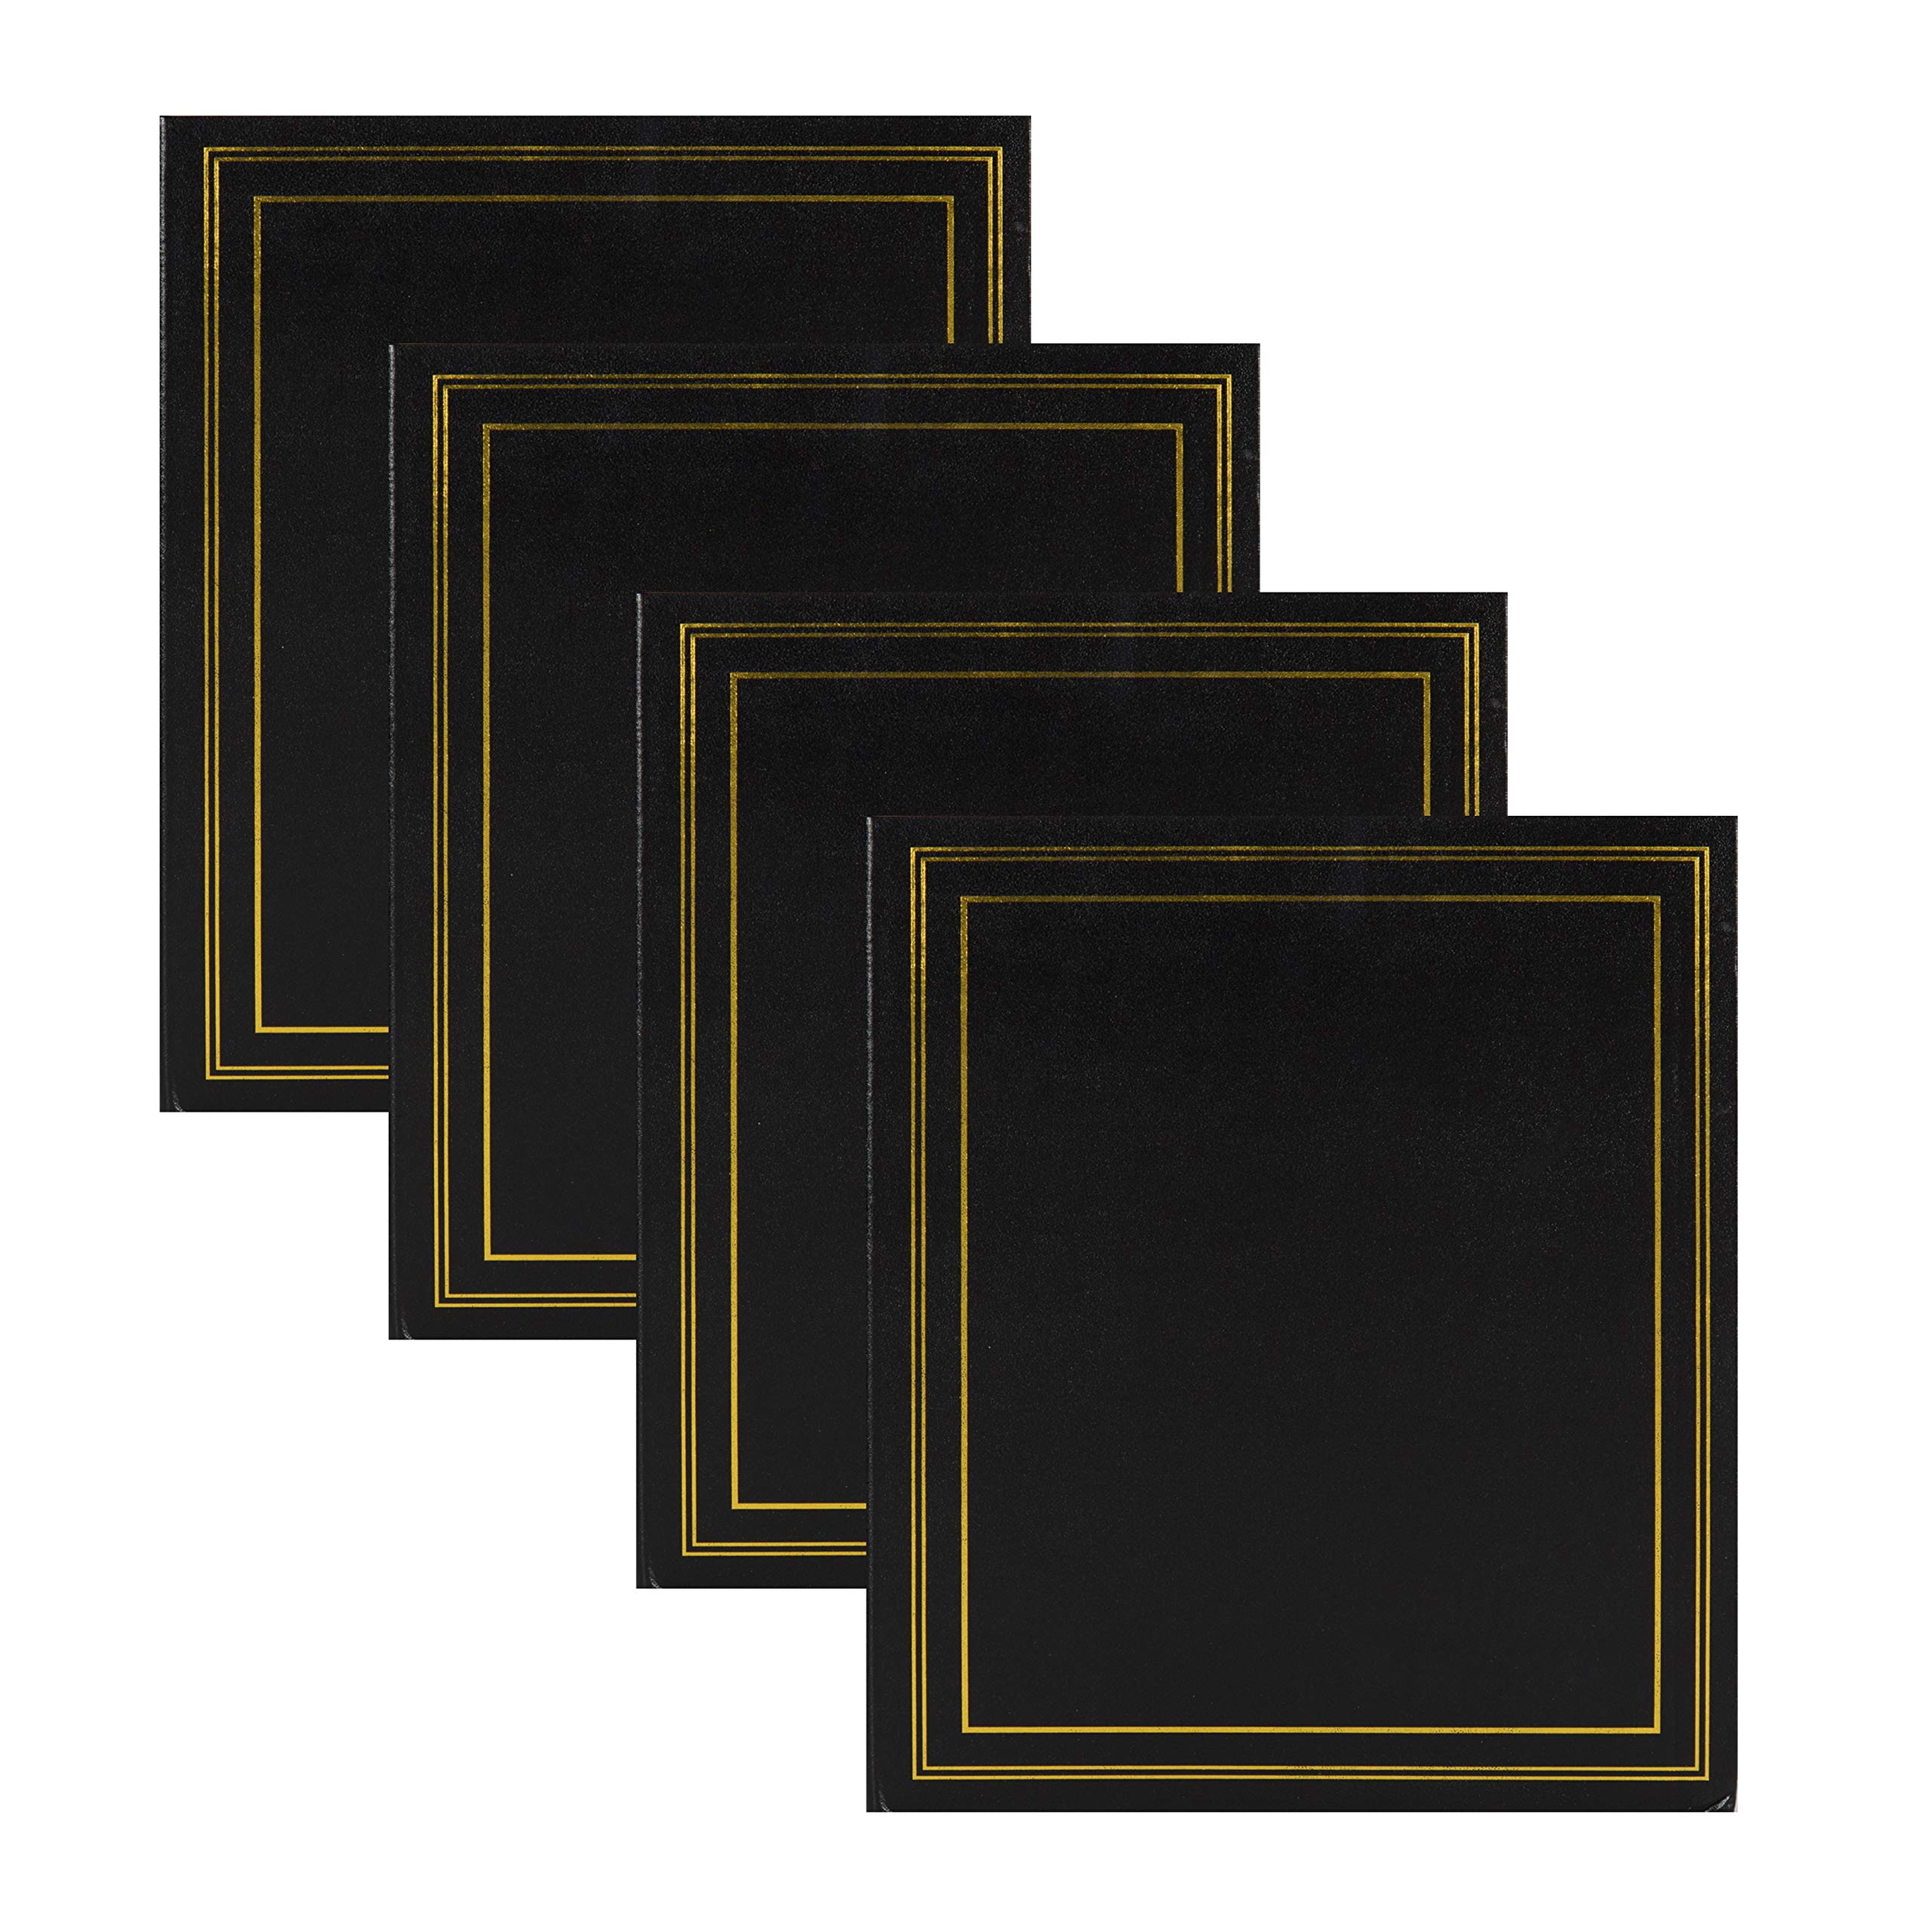 DesignOvation Traditional Photo Albums, Holds 440 4x6 Photos, Set of 4, Black by DesignOvation